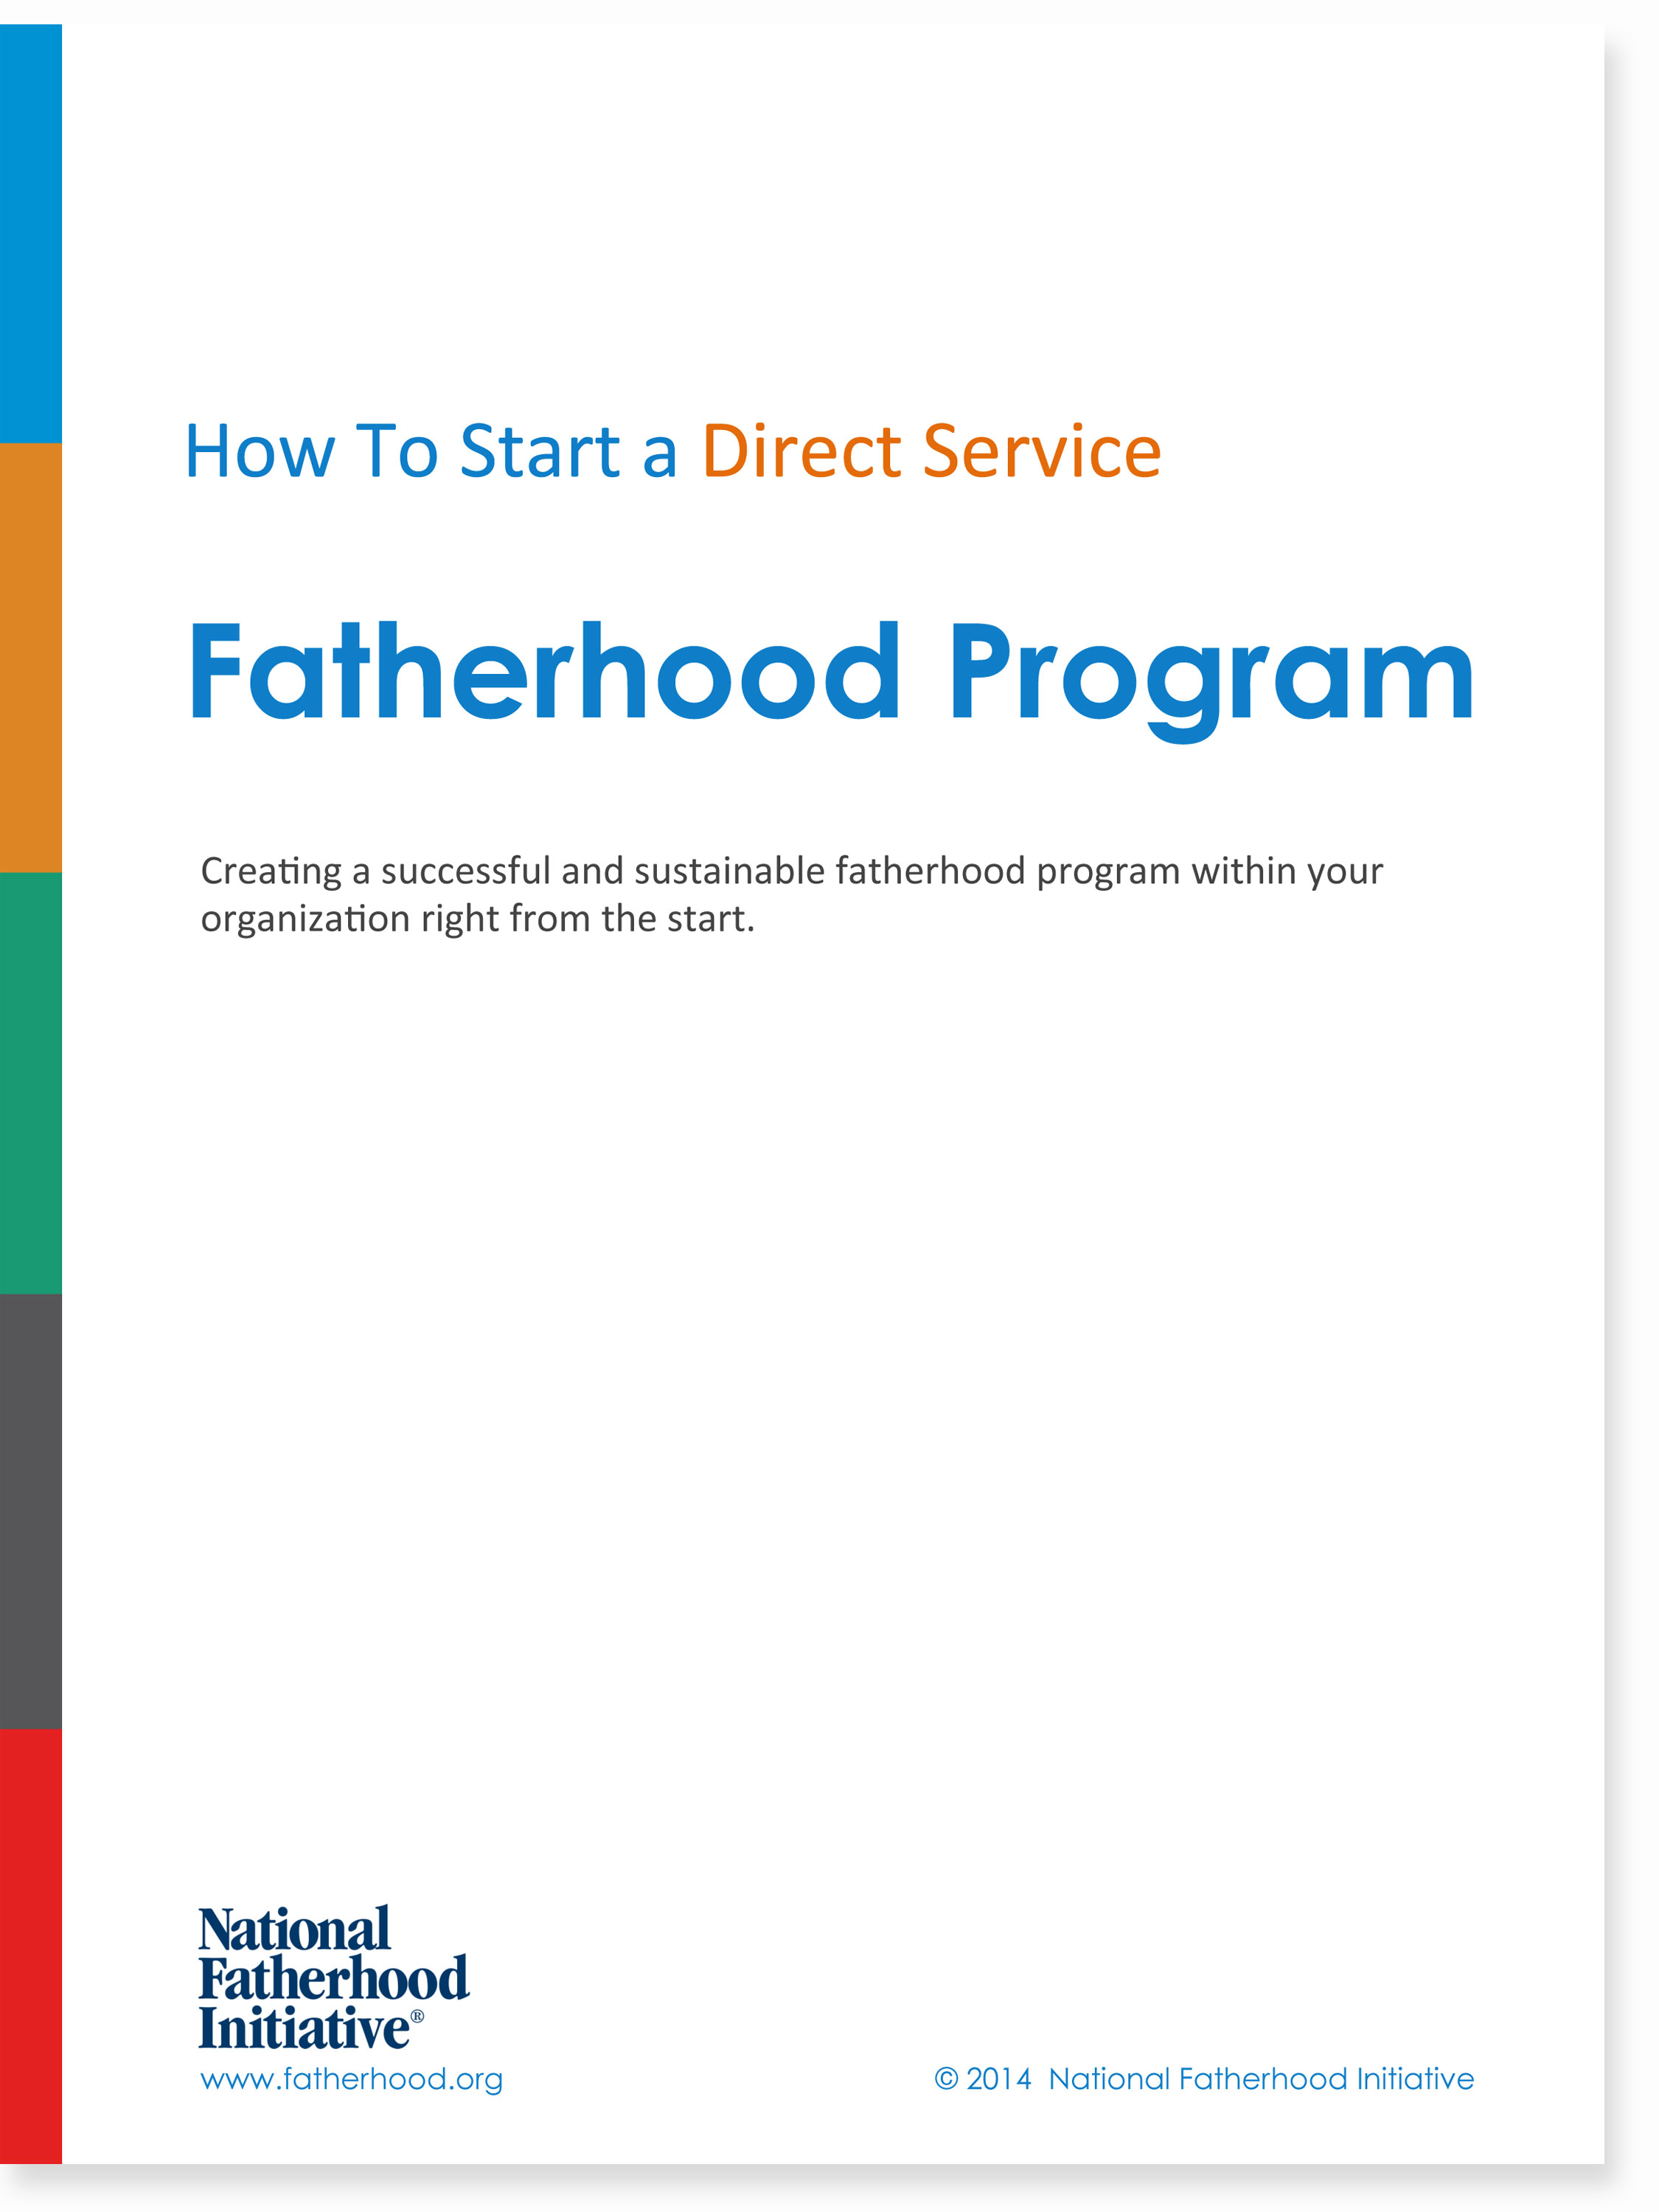 Direct-Service-Fatherhood-Program-eBook-050114-1